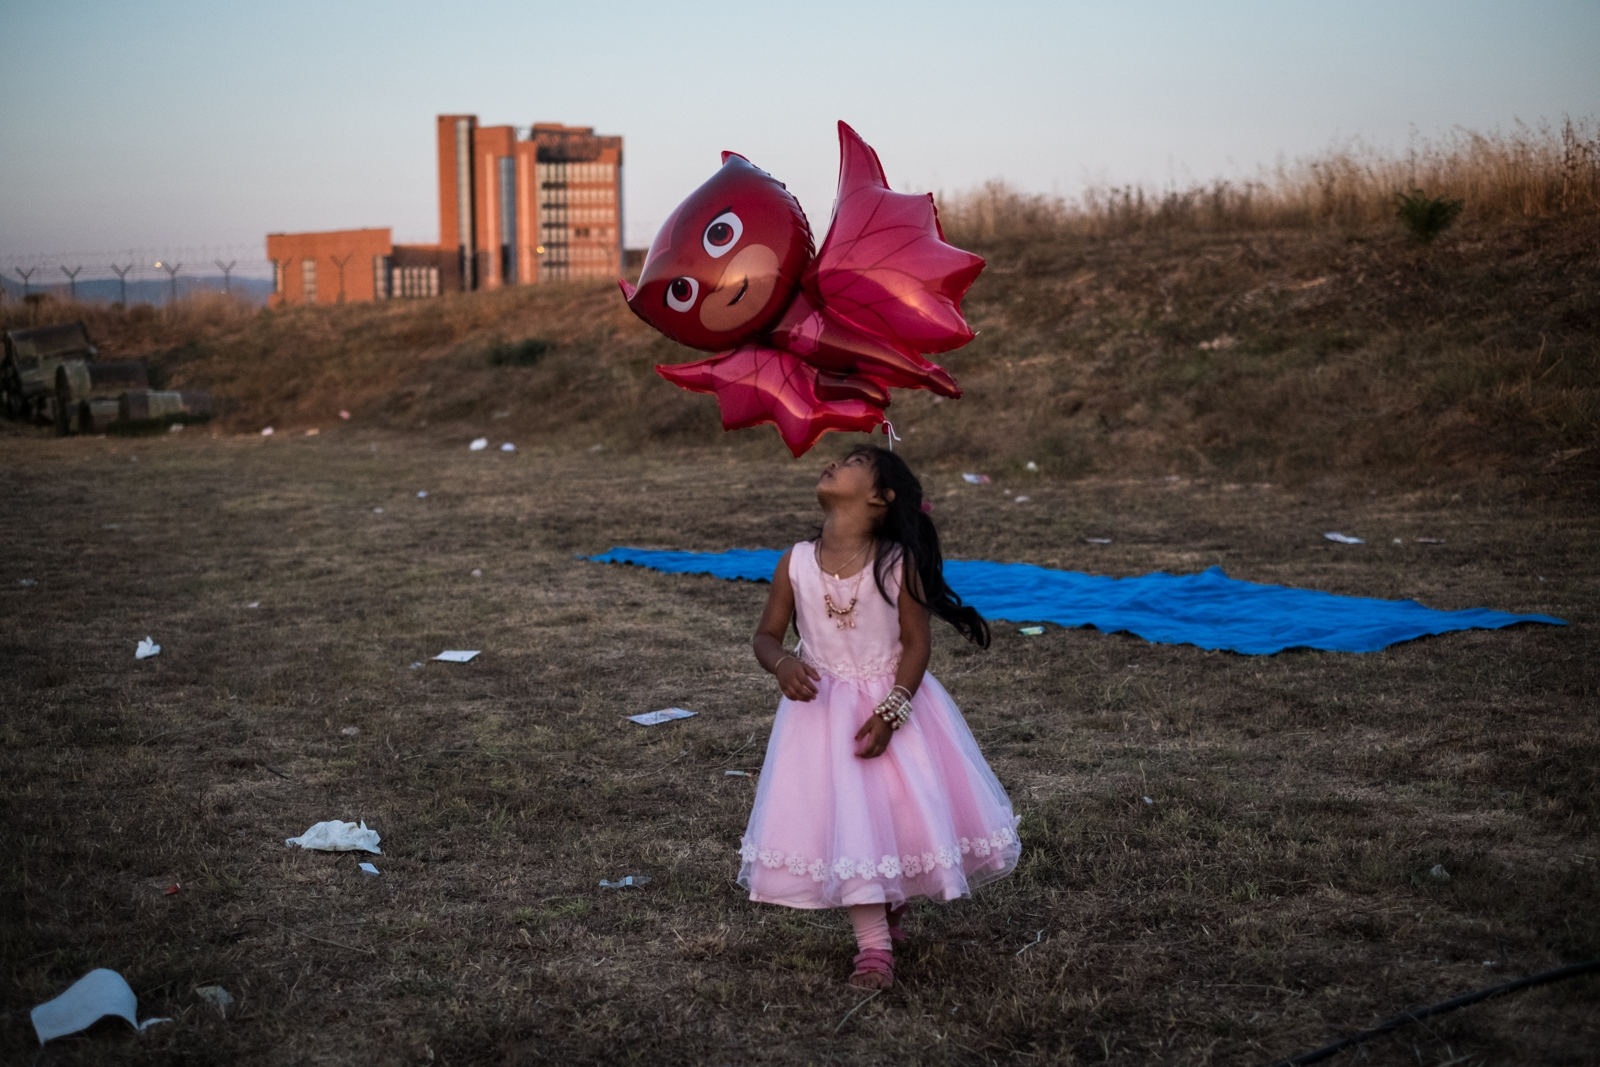 July 30, 2017 - A little girl plays with a balloon before the Maghrib prayer begins. The Bangladeshi community of southern Rome, rented a big space to vote for new representatives and this is the area designated for the prayer.